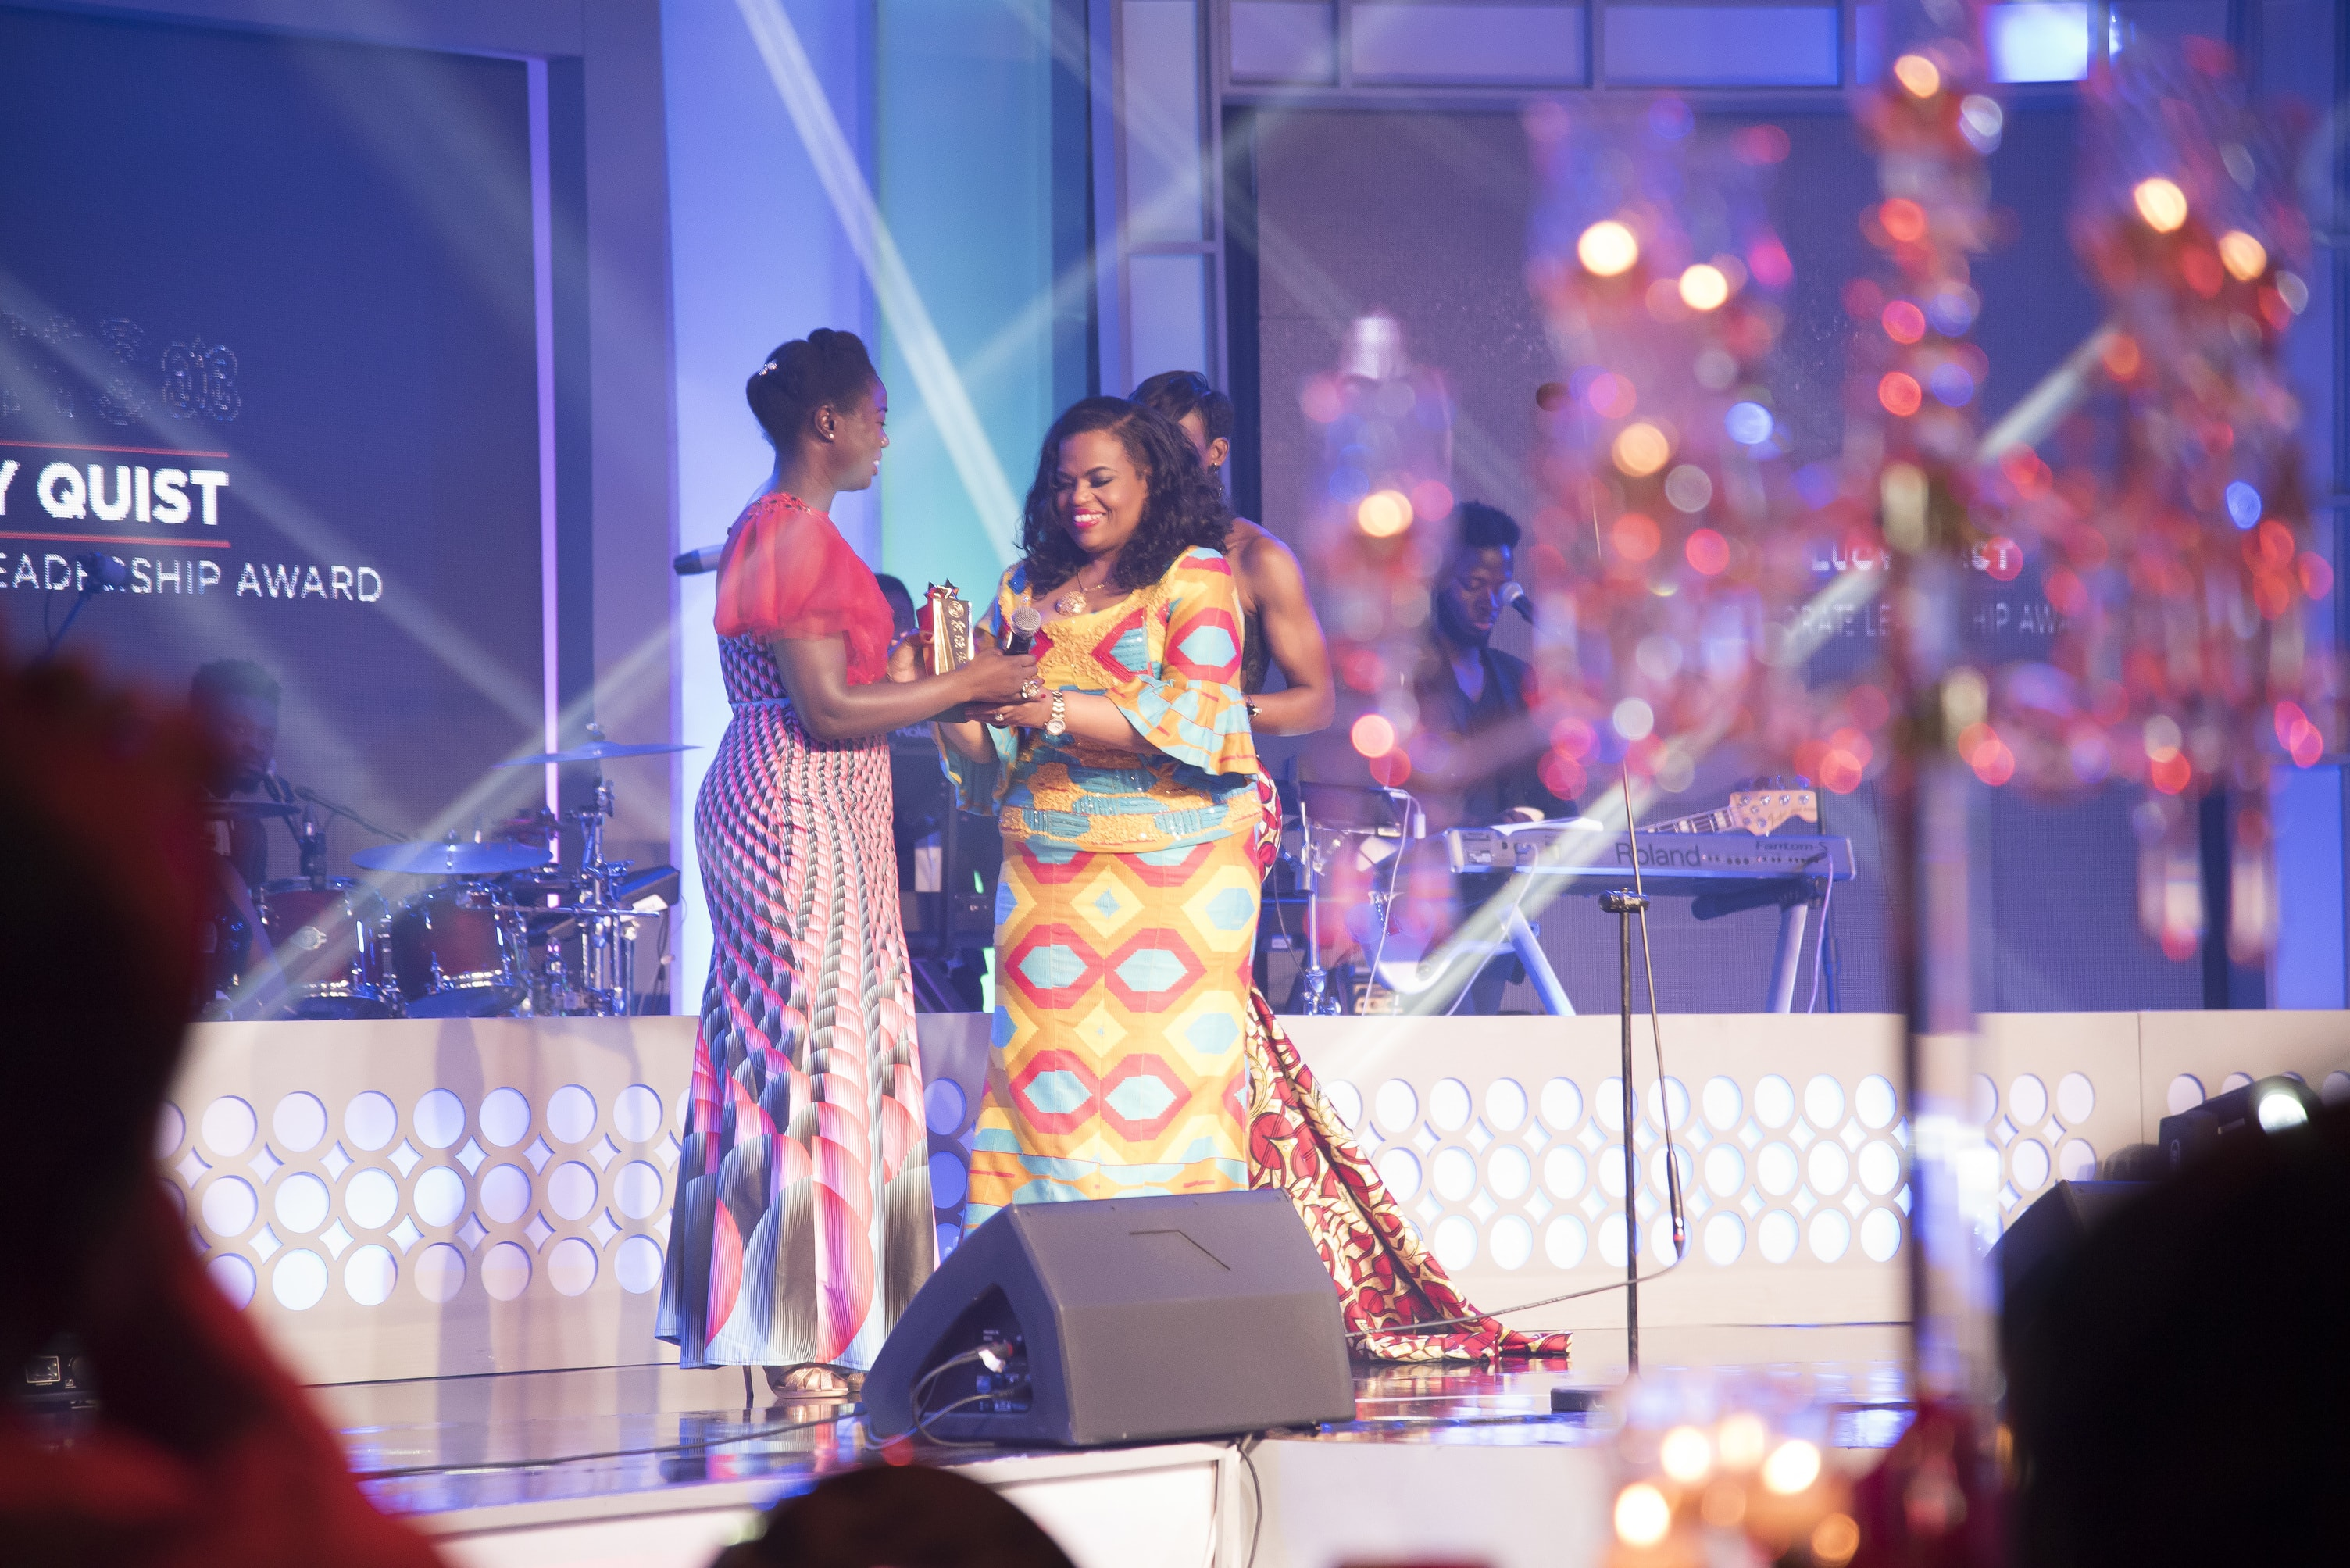 LUCY QUIST HONOURED FOR EXCEPTIONAL CORPORATE LEADERSHIP